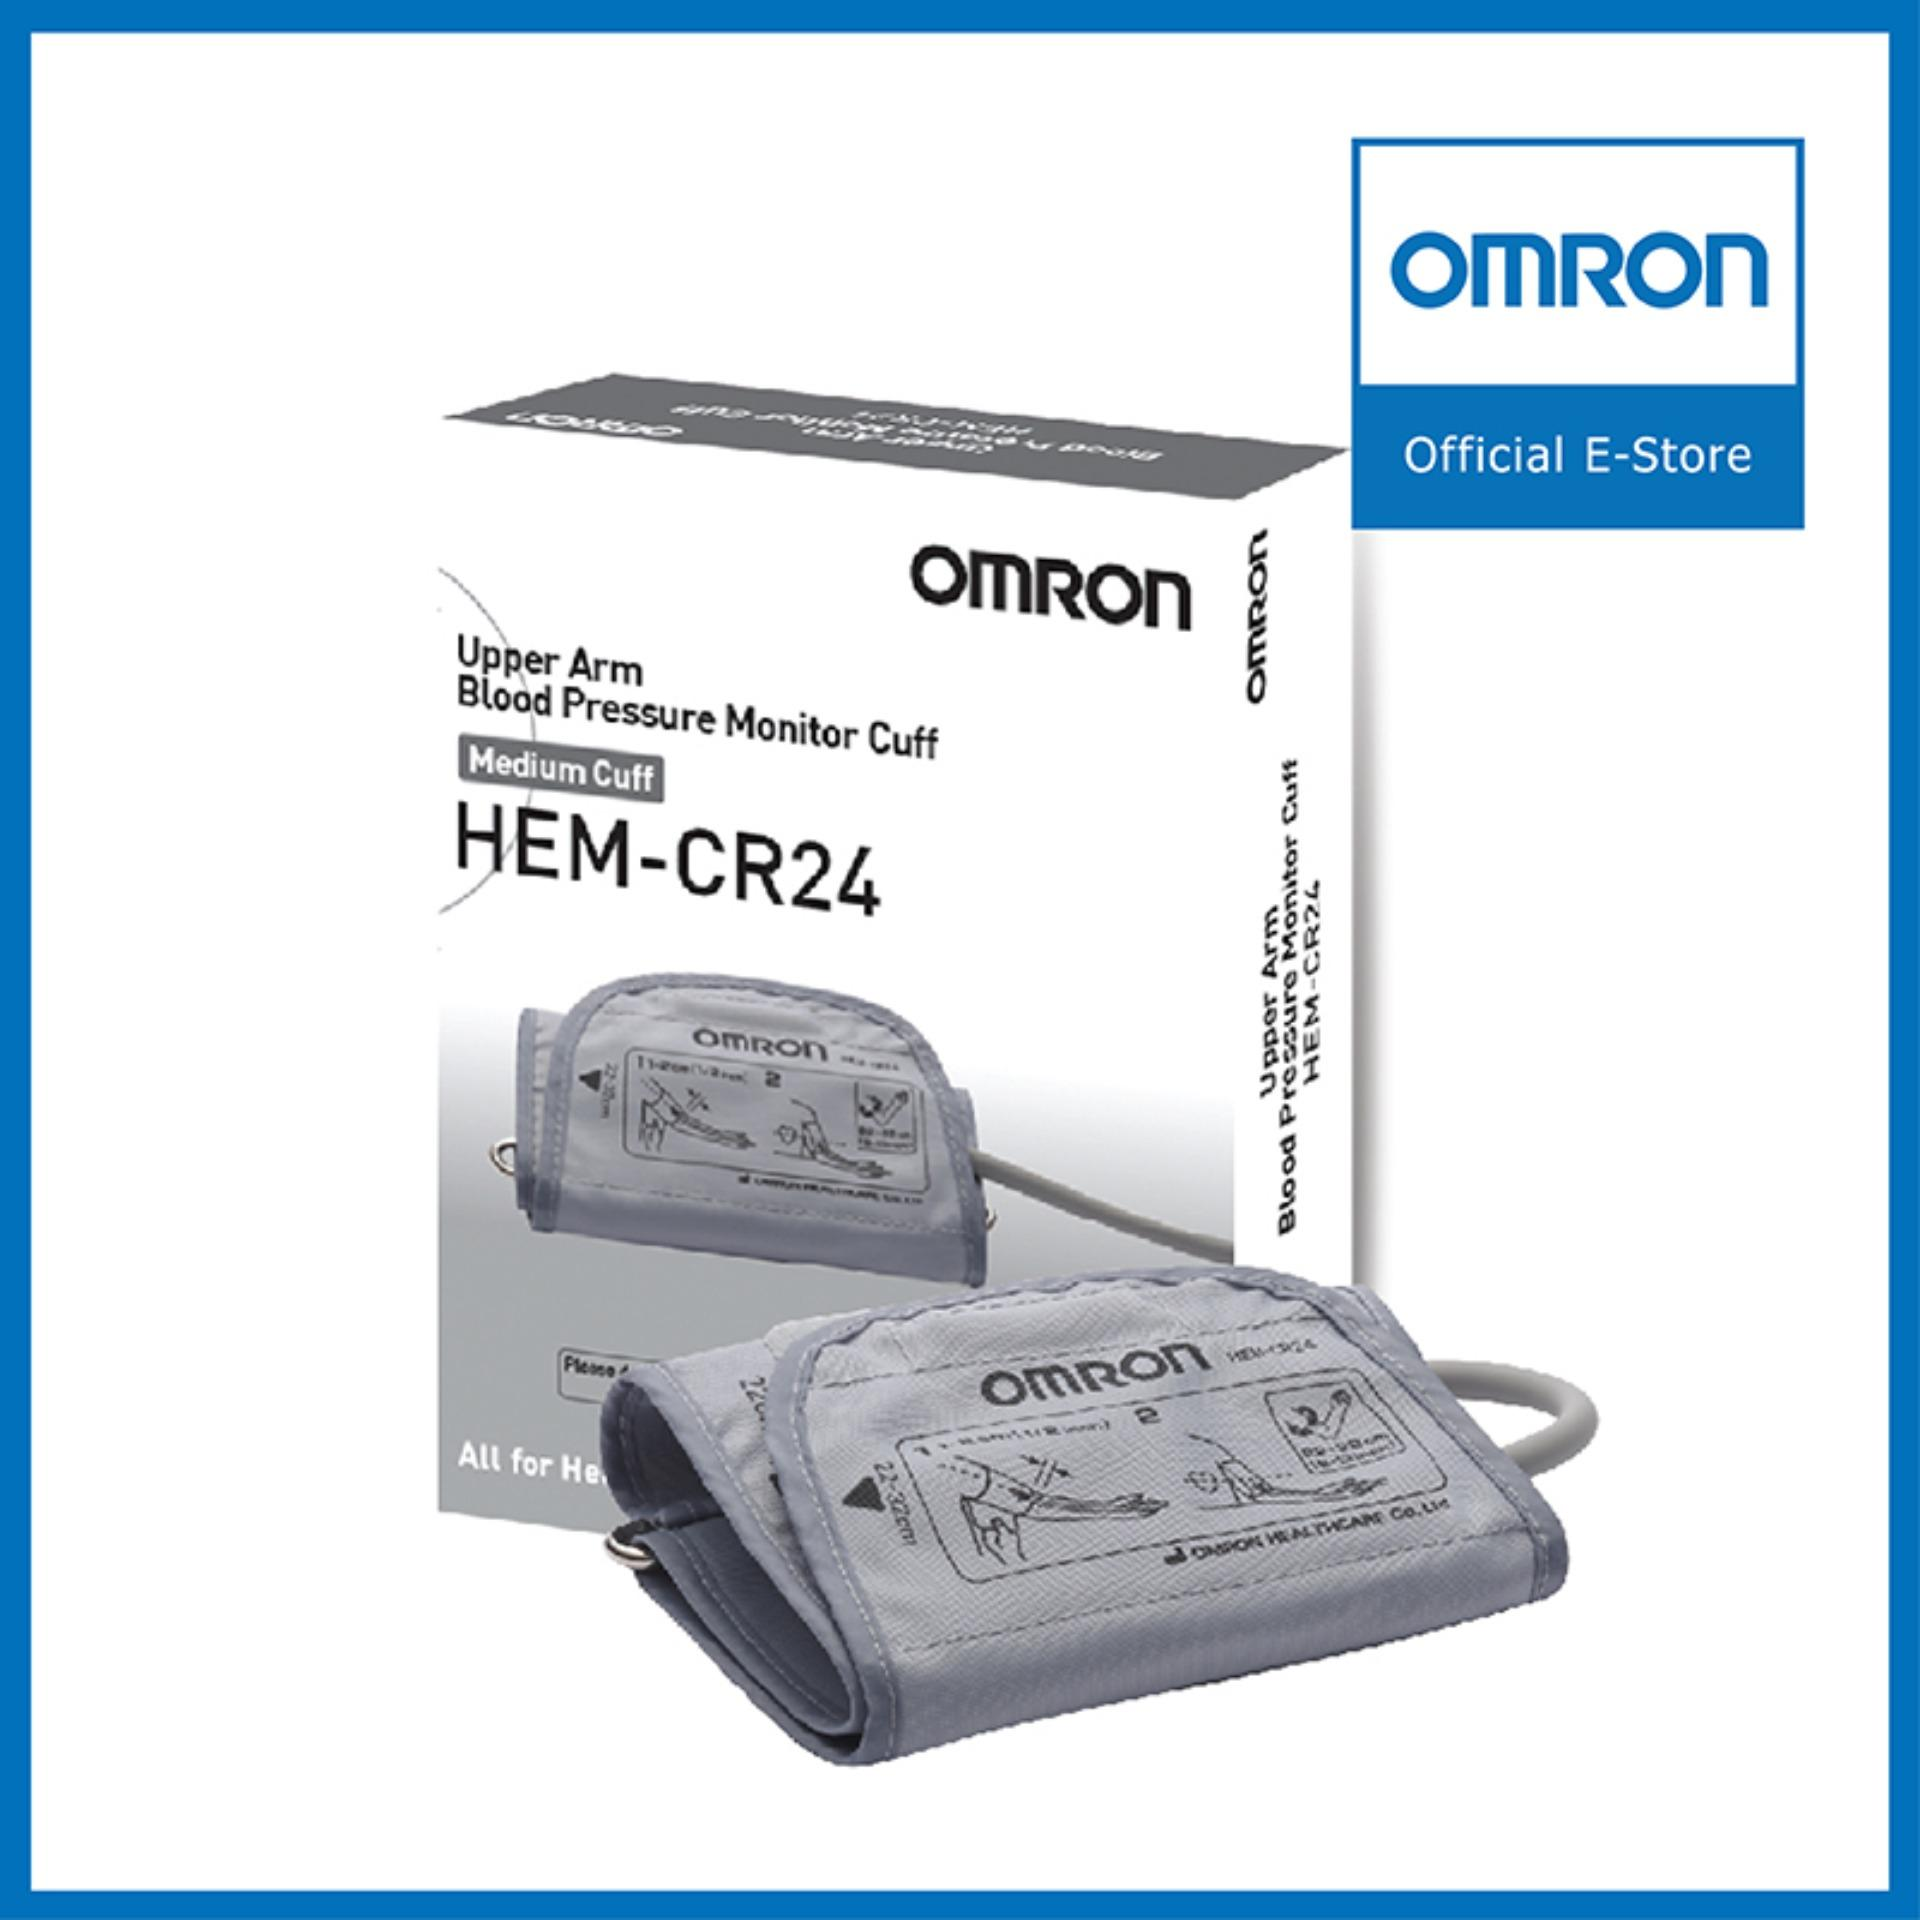 Latest Omron Health Monitors Tests Products Enjoy Huge Discounts Hem 7211 Automatic Blood Pressure Monitor Cuff For Cr24